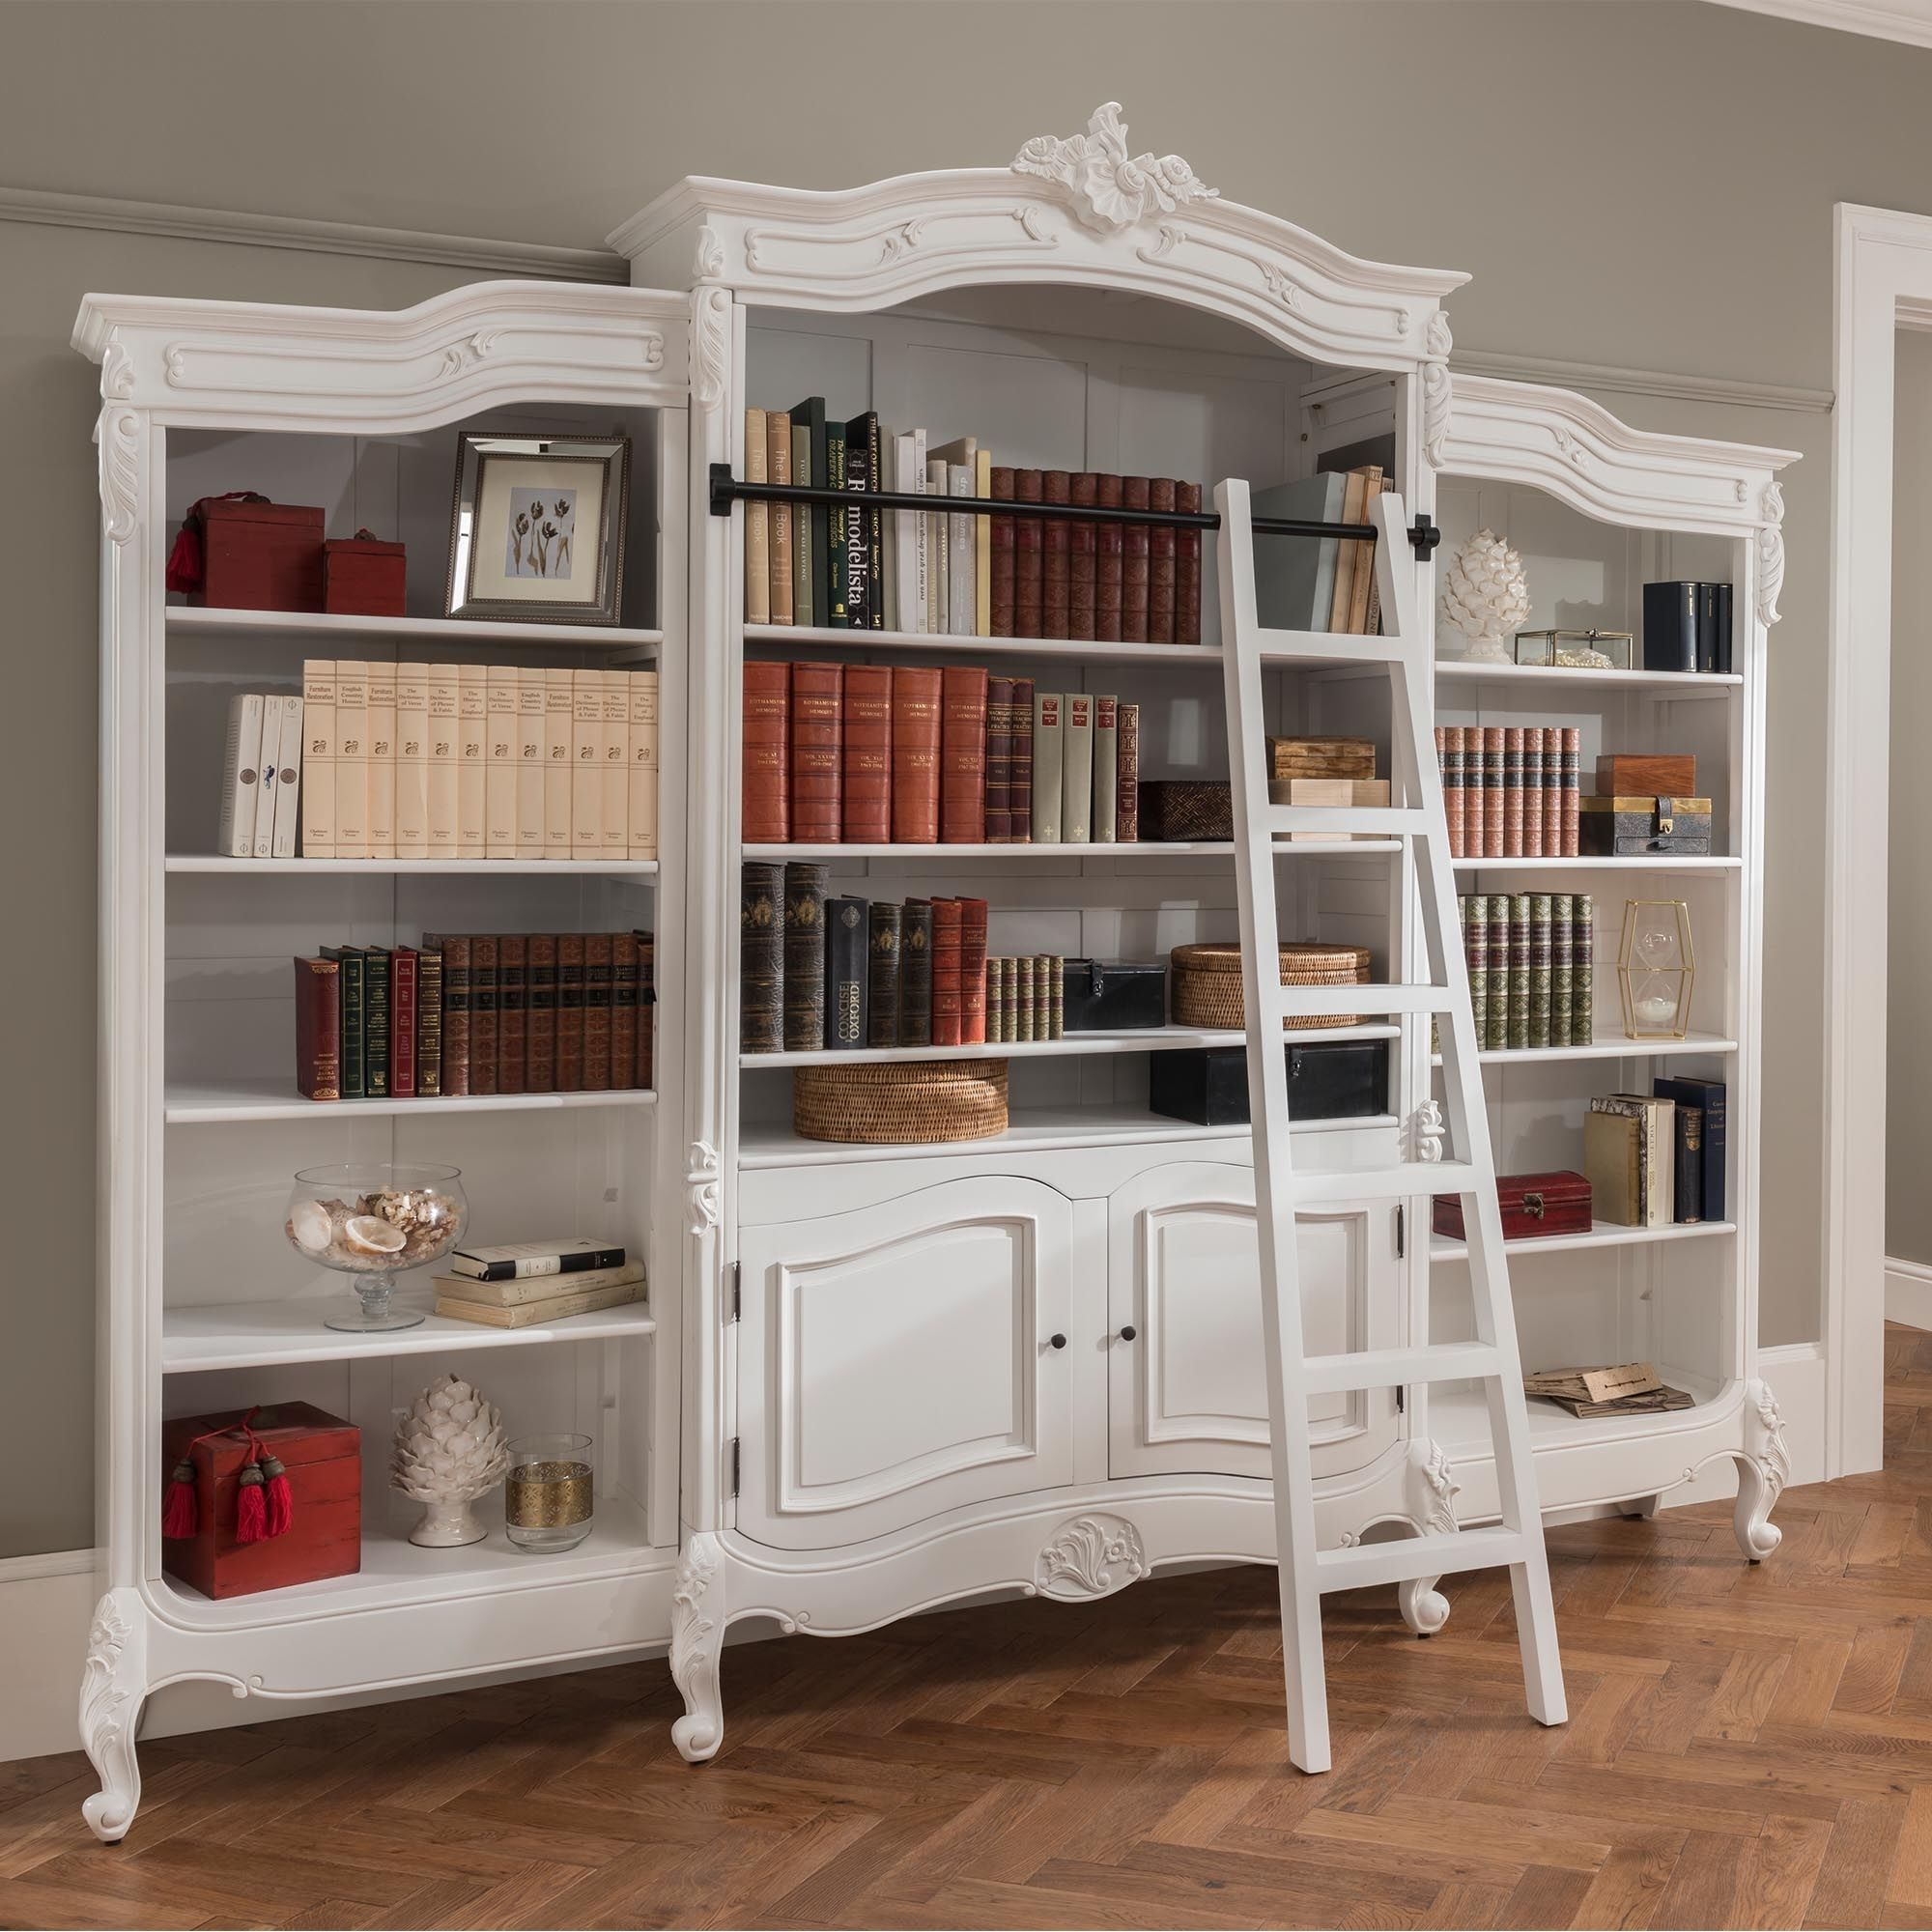 Antique French Style Bookcase in 2020 Shabby chic